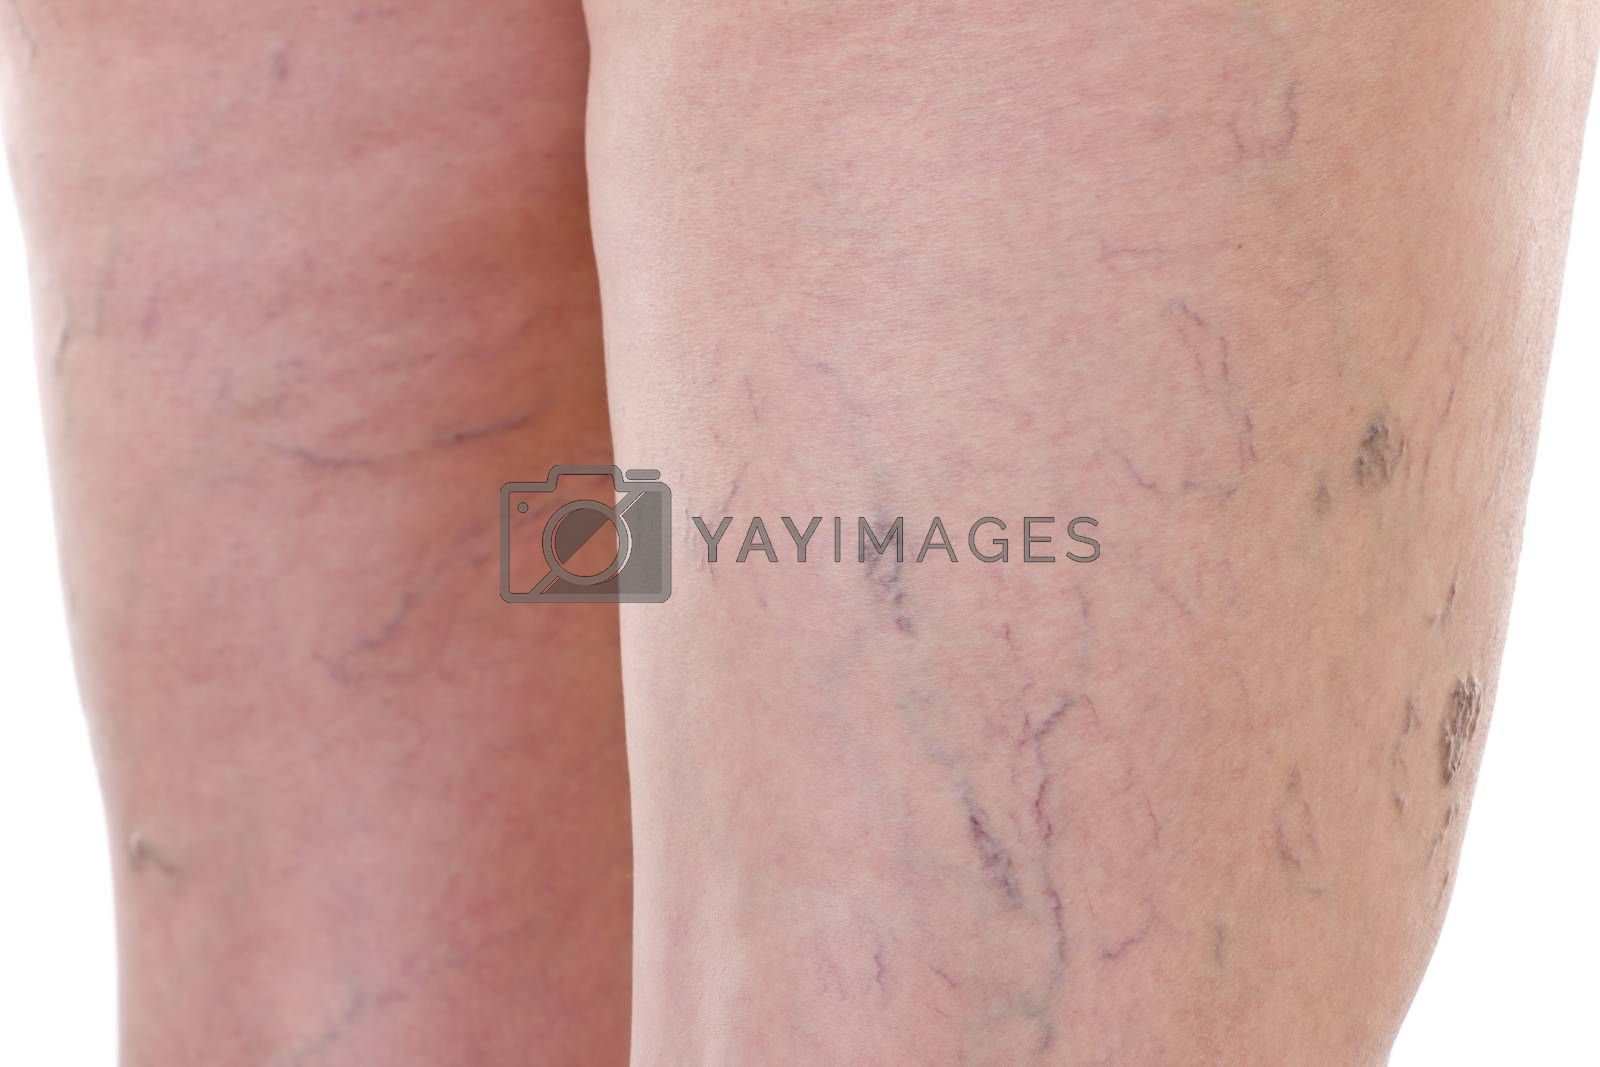 Close-up of legs with varicose veins